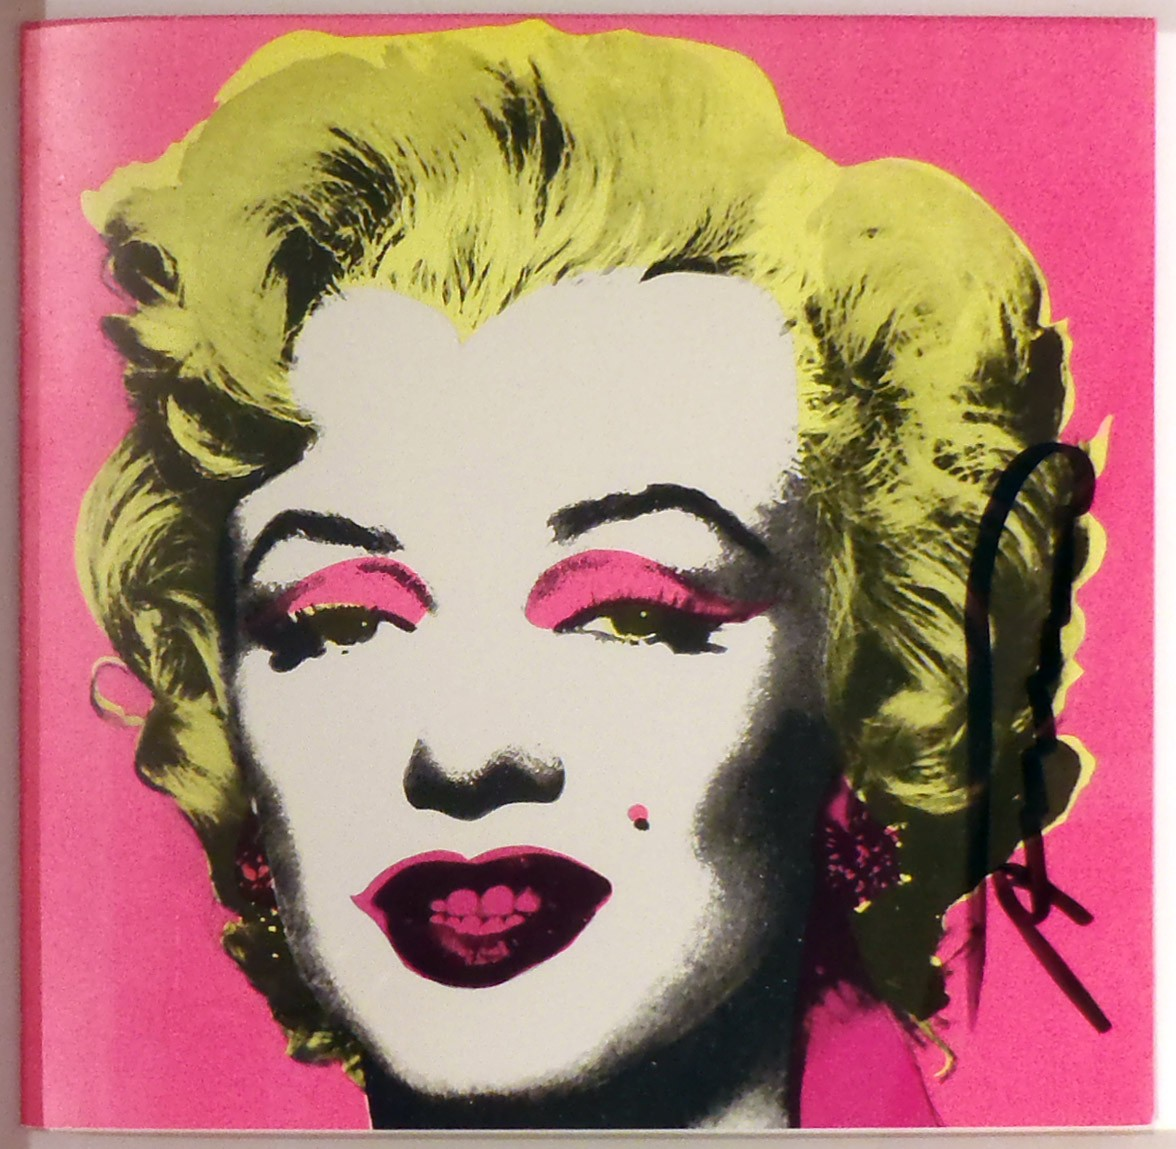 Andy Warhol | Marilyn Monroe | 1981 | Image of Artists' work.